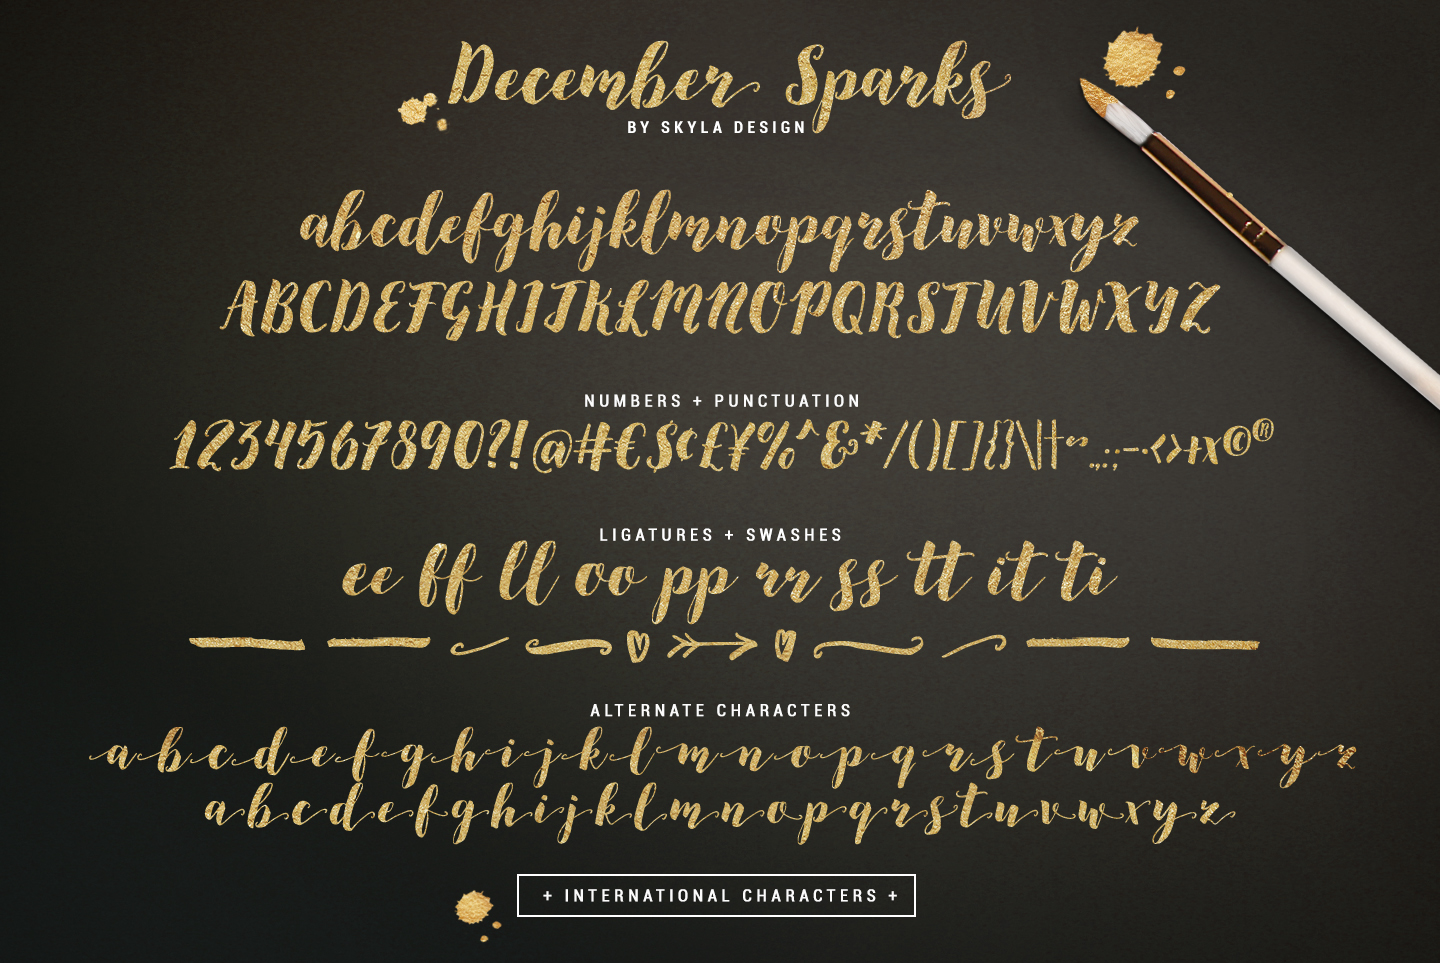 Modern Brush Calligraphy Font December Sparks Example Image 6